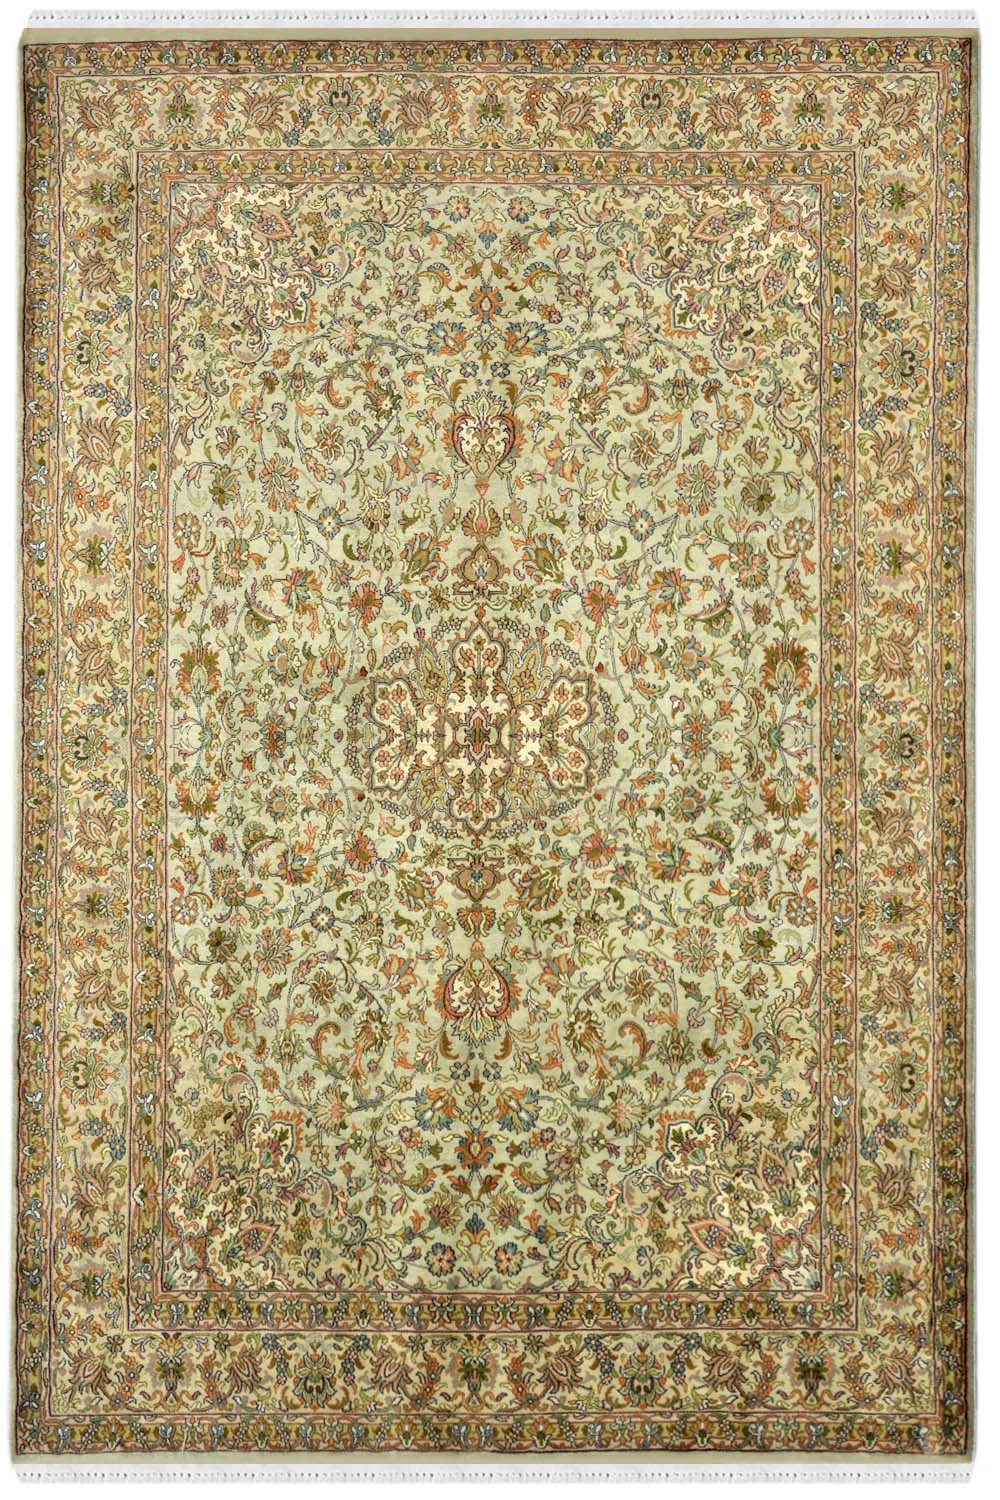 4x6 Pista Medallion Rug Gold Color Silk Area Rugs